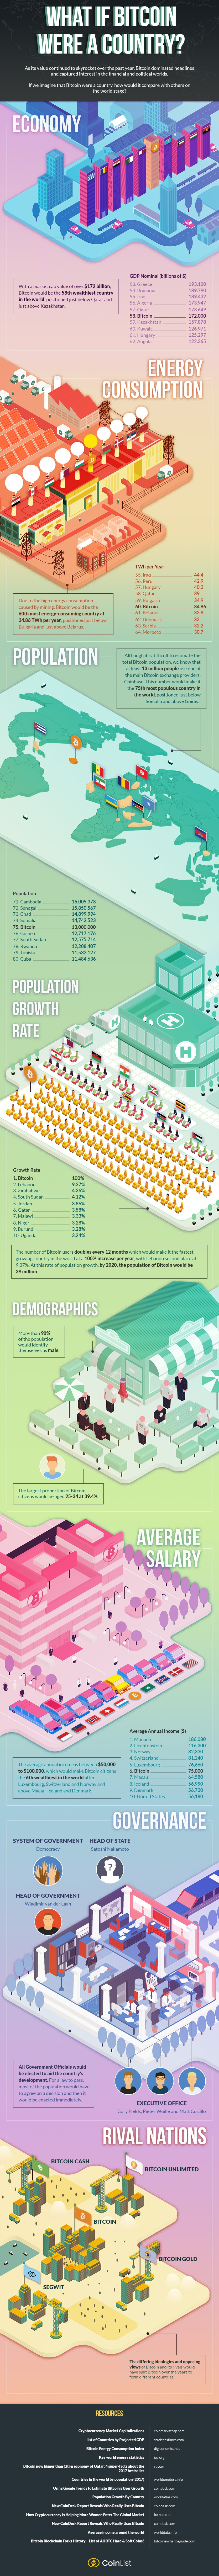 Comparing Bitcoin to a Country Infographic